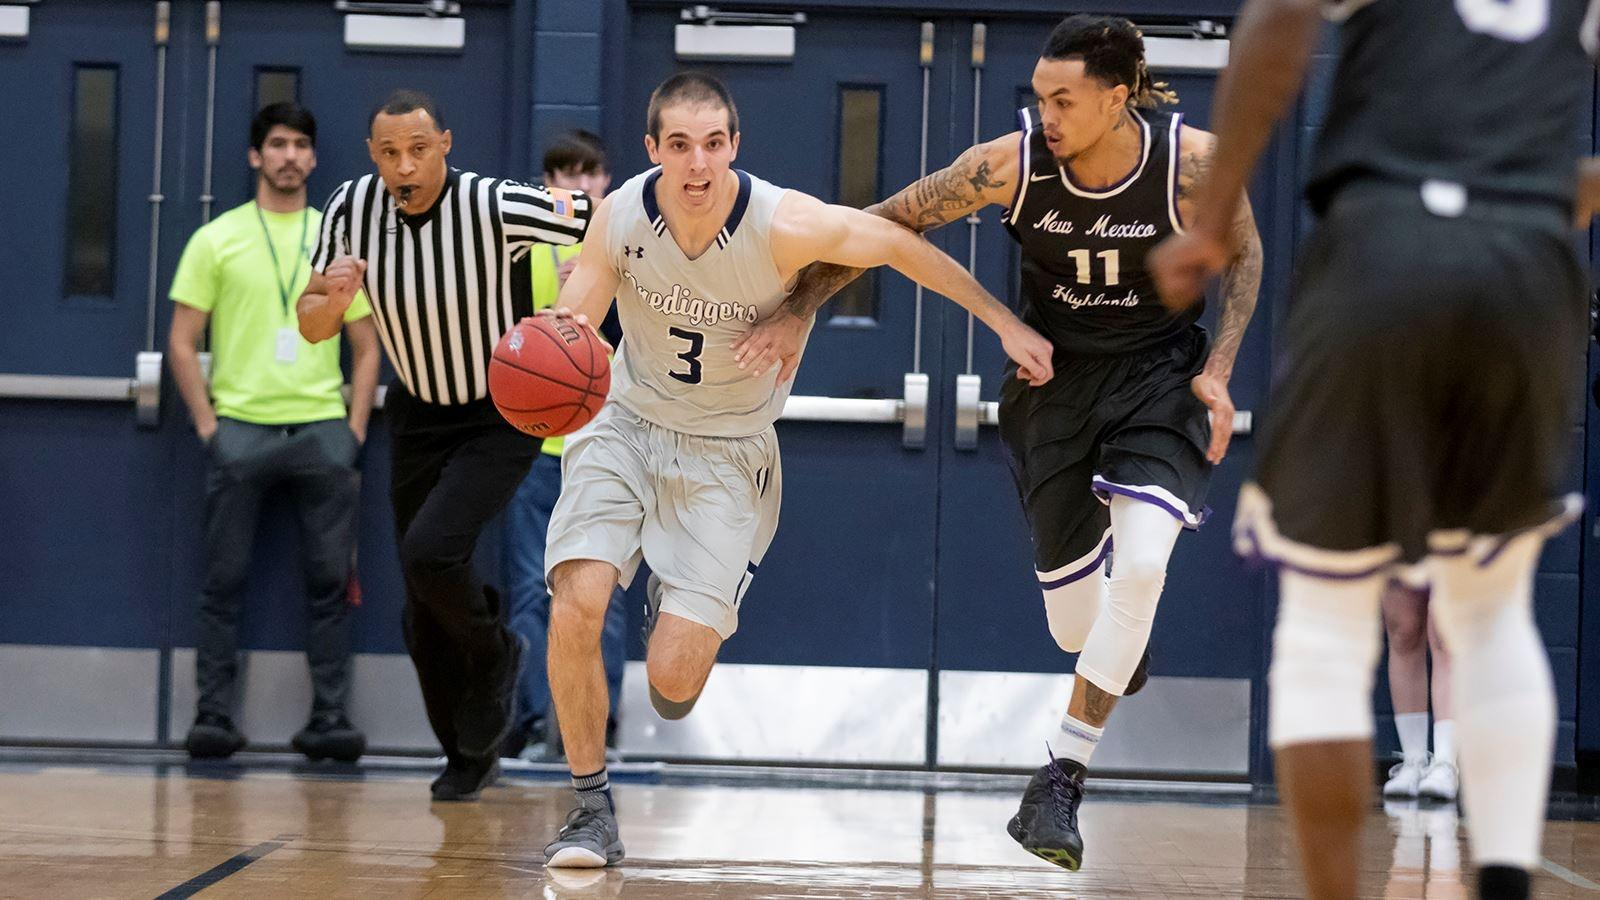 Colorado School of Mines basketball has won 21 straight games.